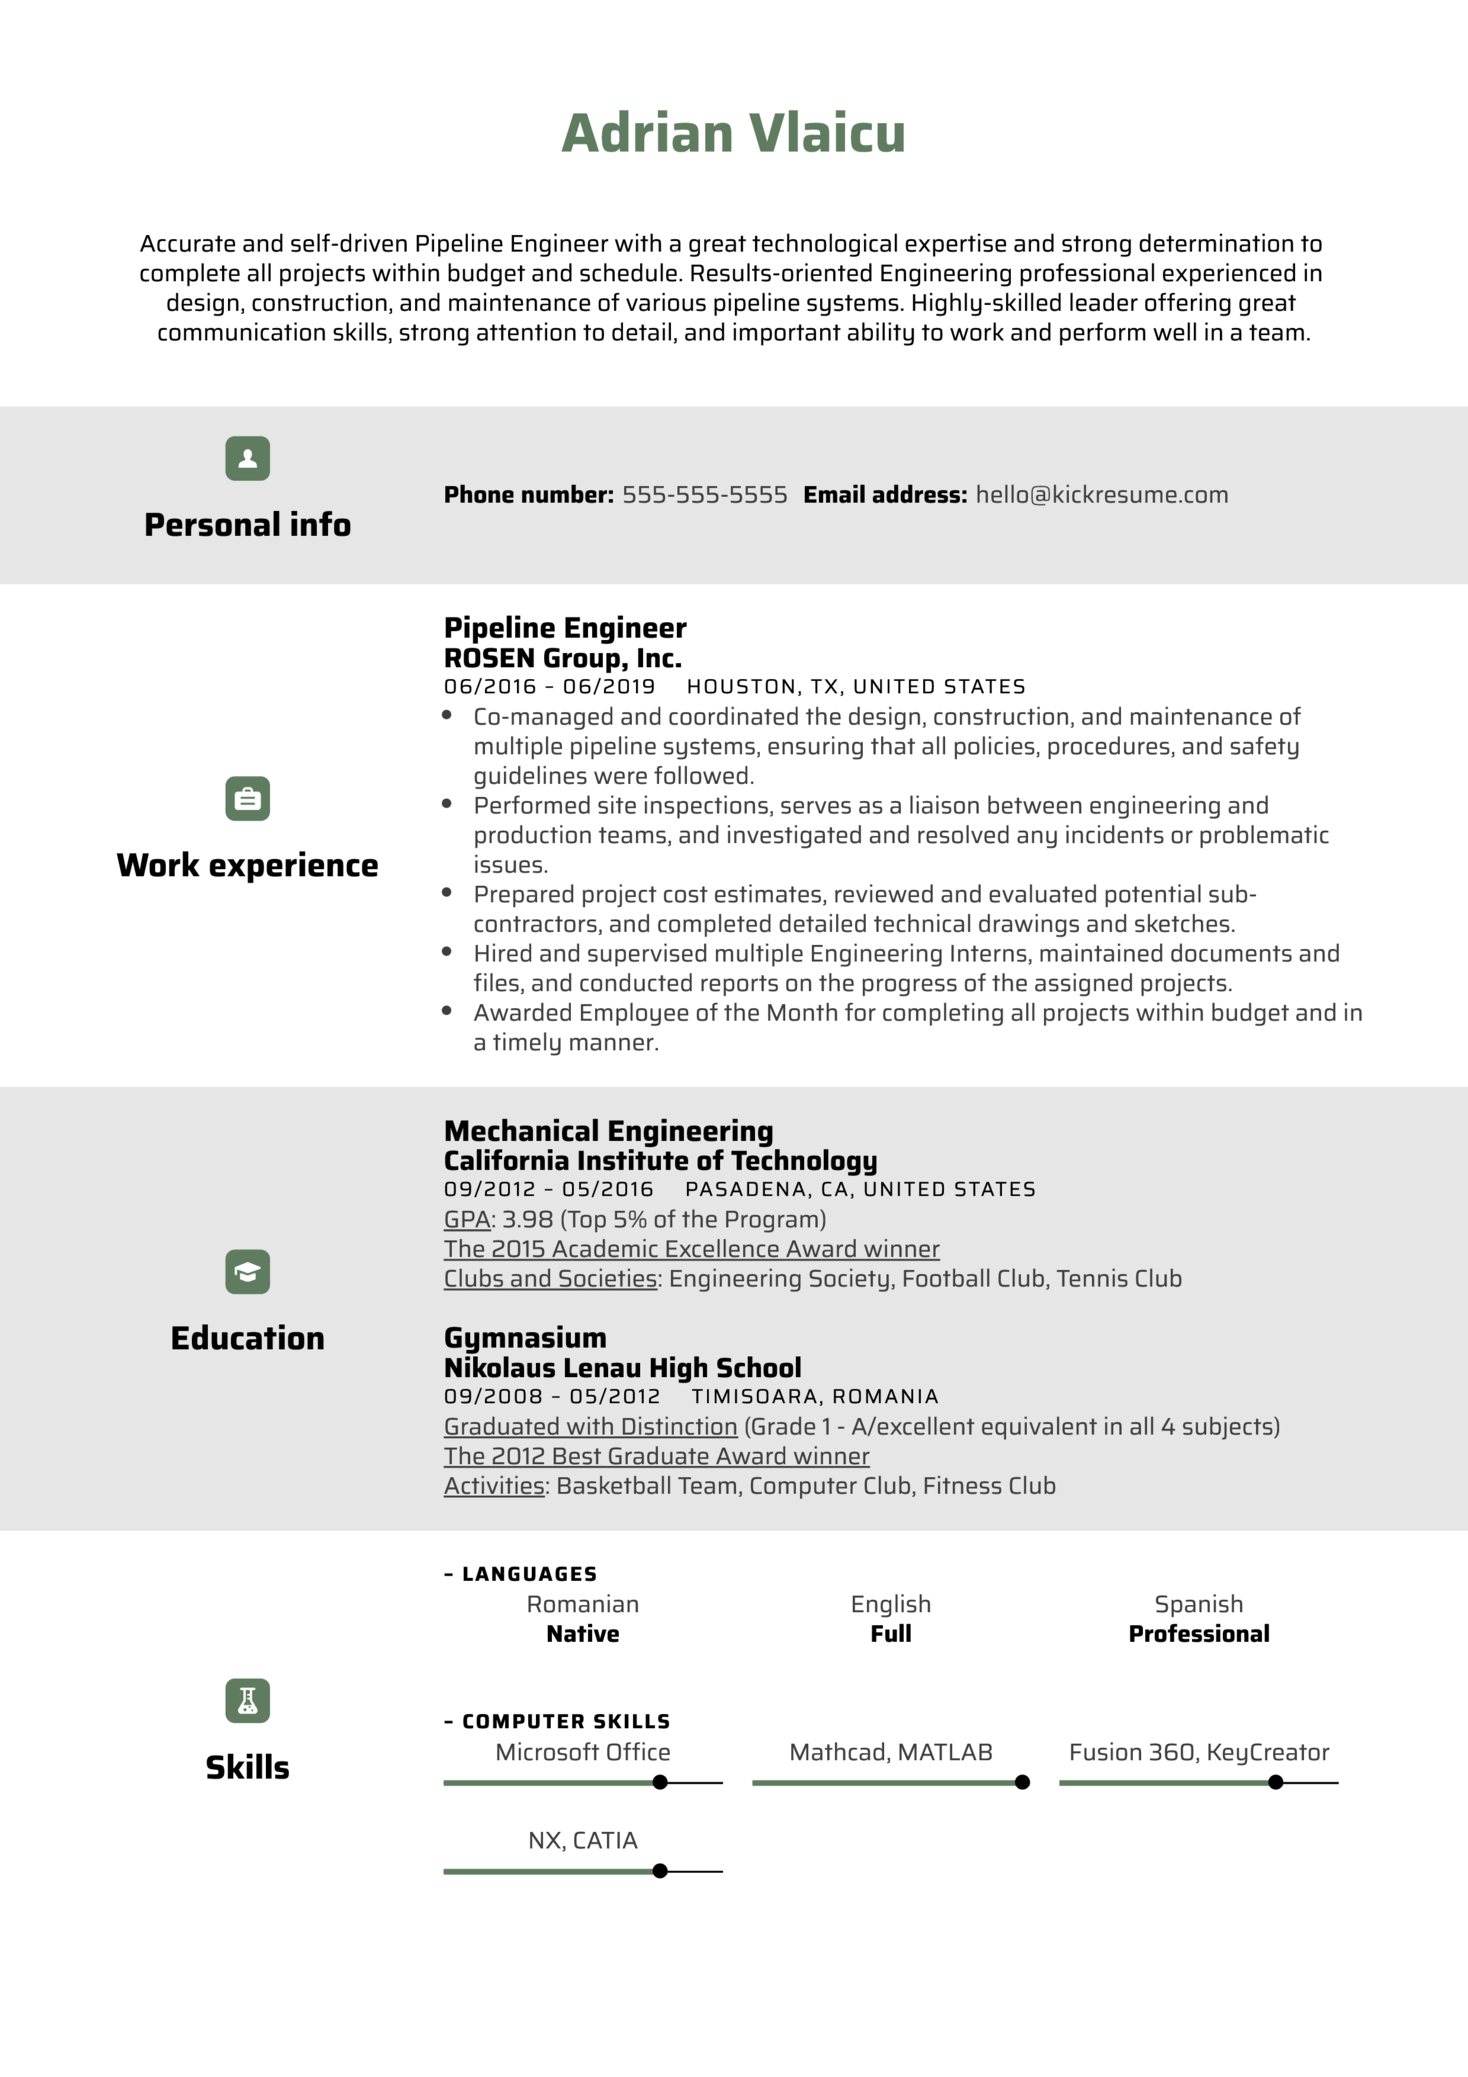 Pipeline Engineer Resume Sample (parte 1)